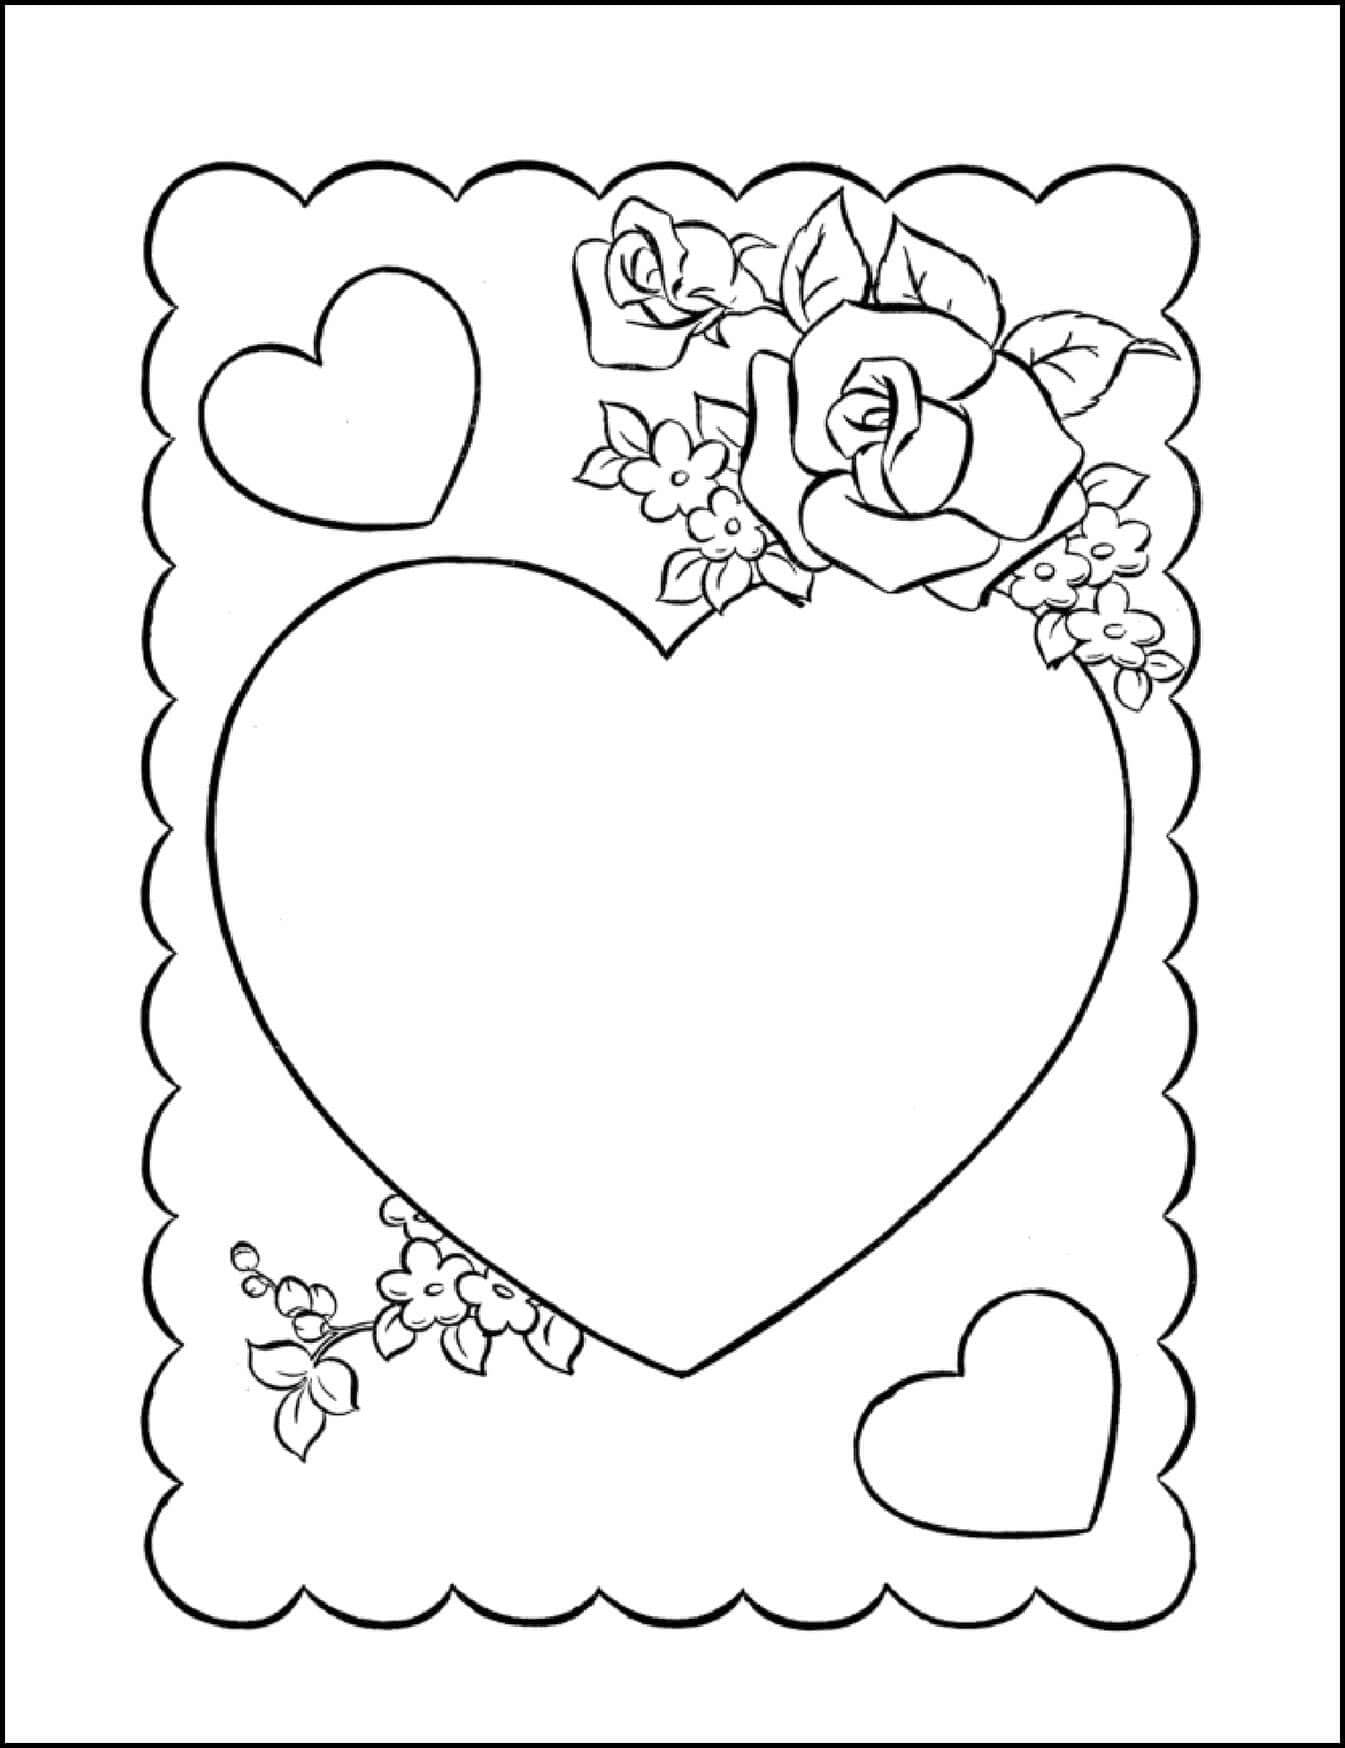 Coloring card for Valentine's Day